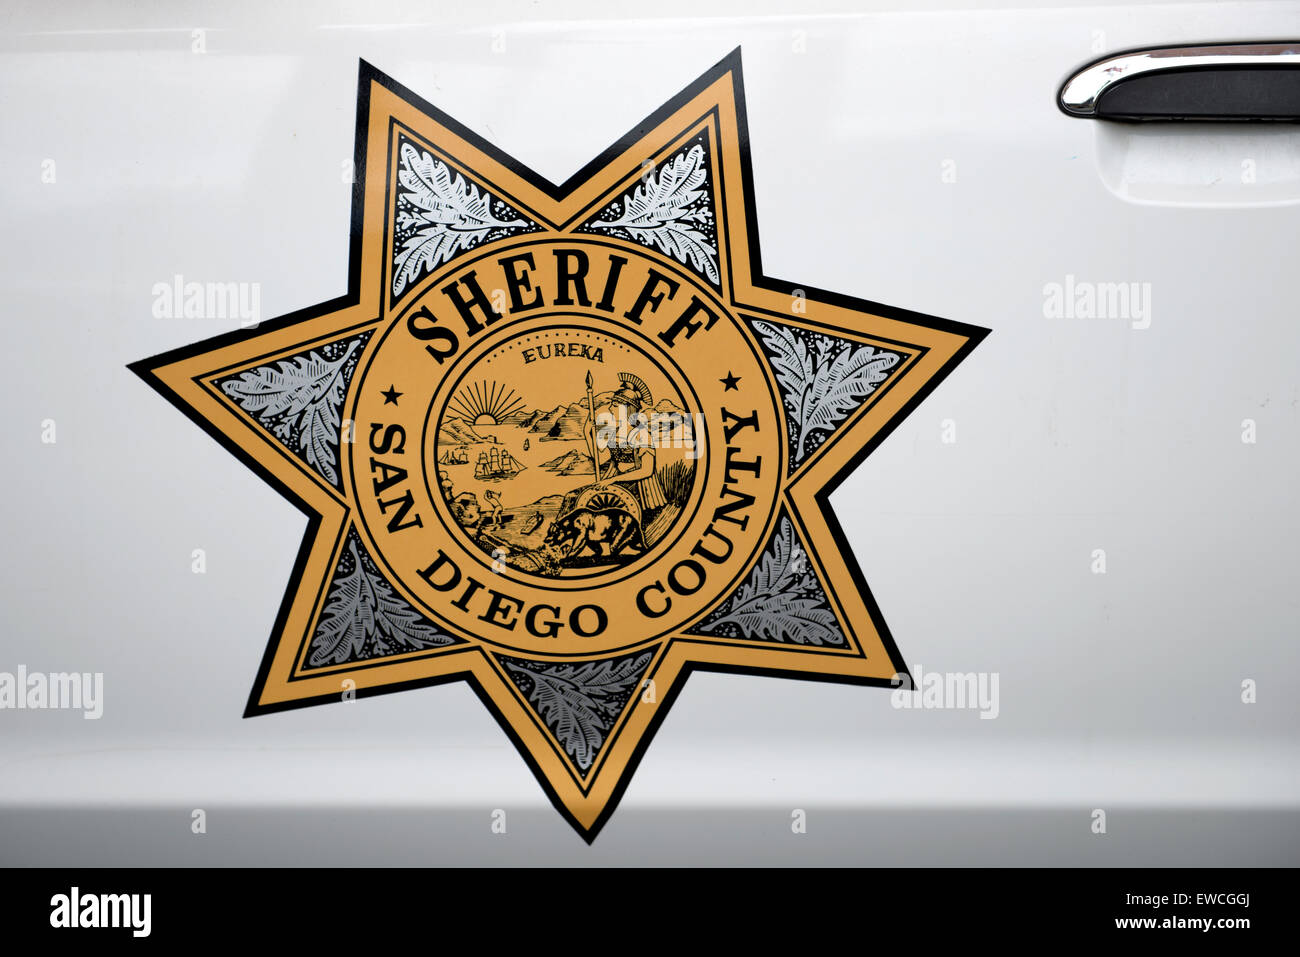 San Diego County Sheriff logo on patrol car door, San Diego, California Stock Photo